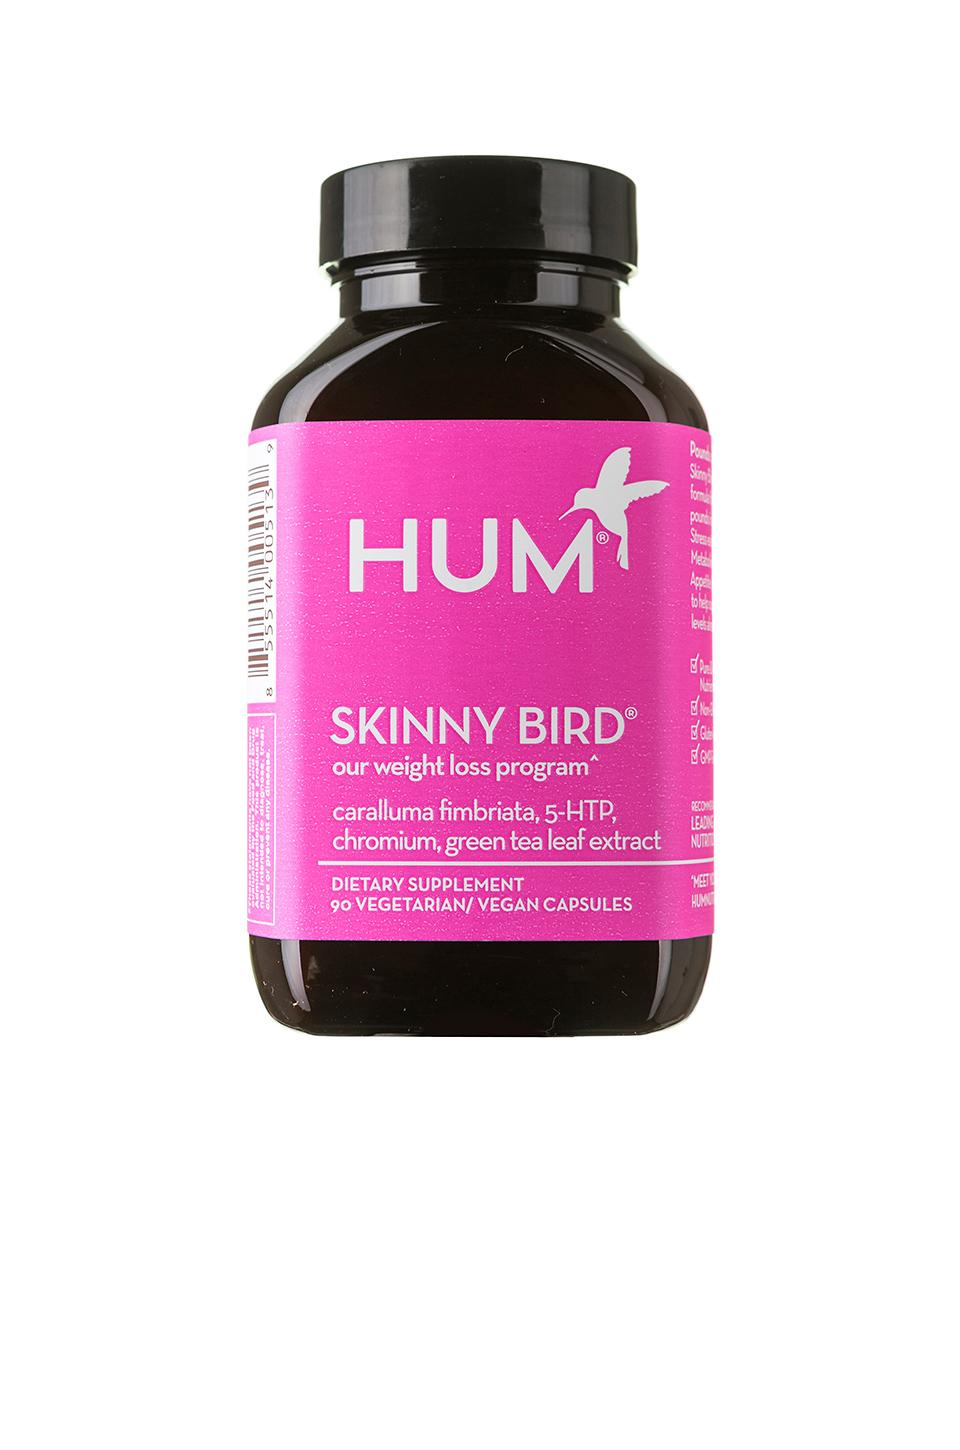 Hum Nutrition Skinny Bird Weight Loss Support Supplement In N,a